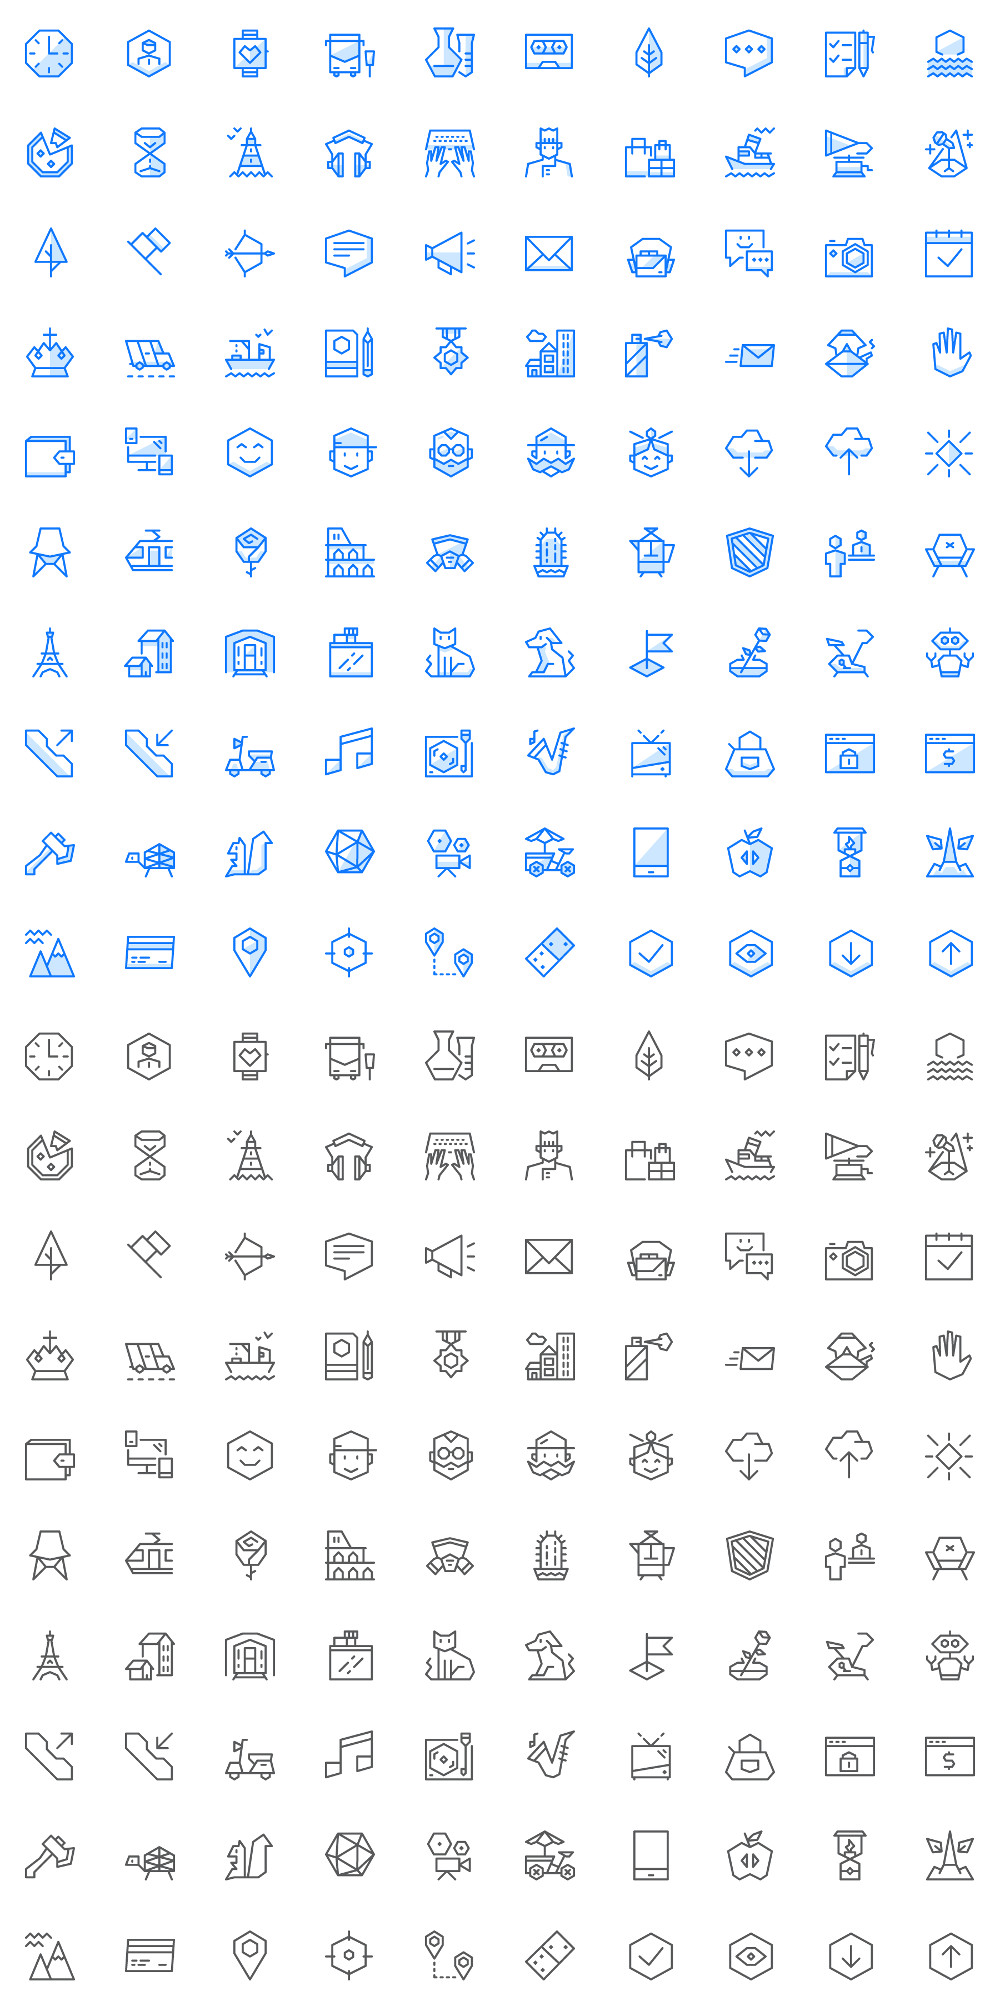 Ego Icons - Free Pack 100 Icons